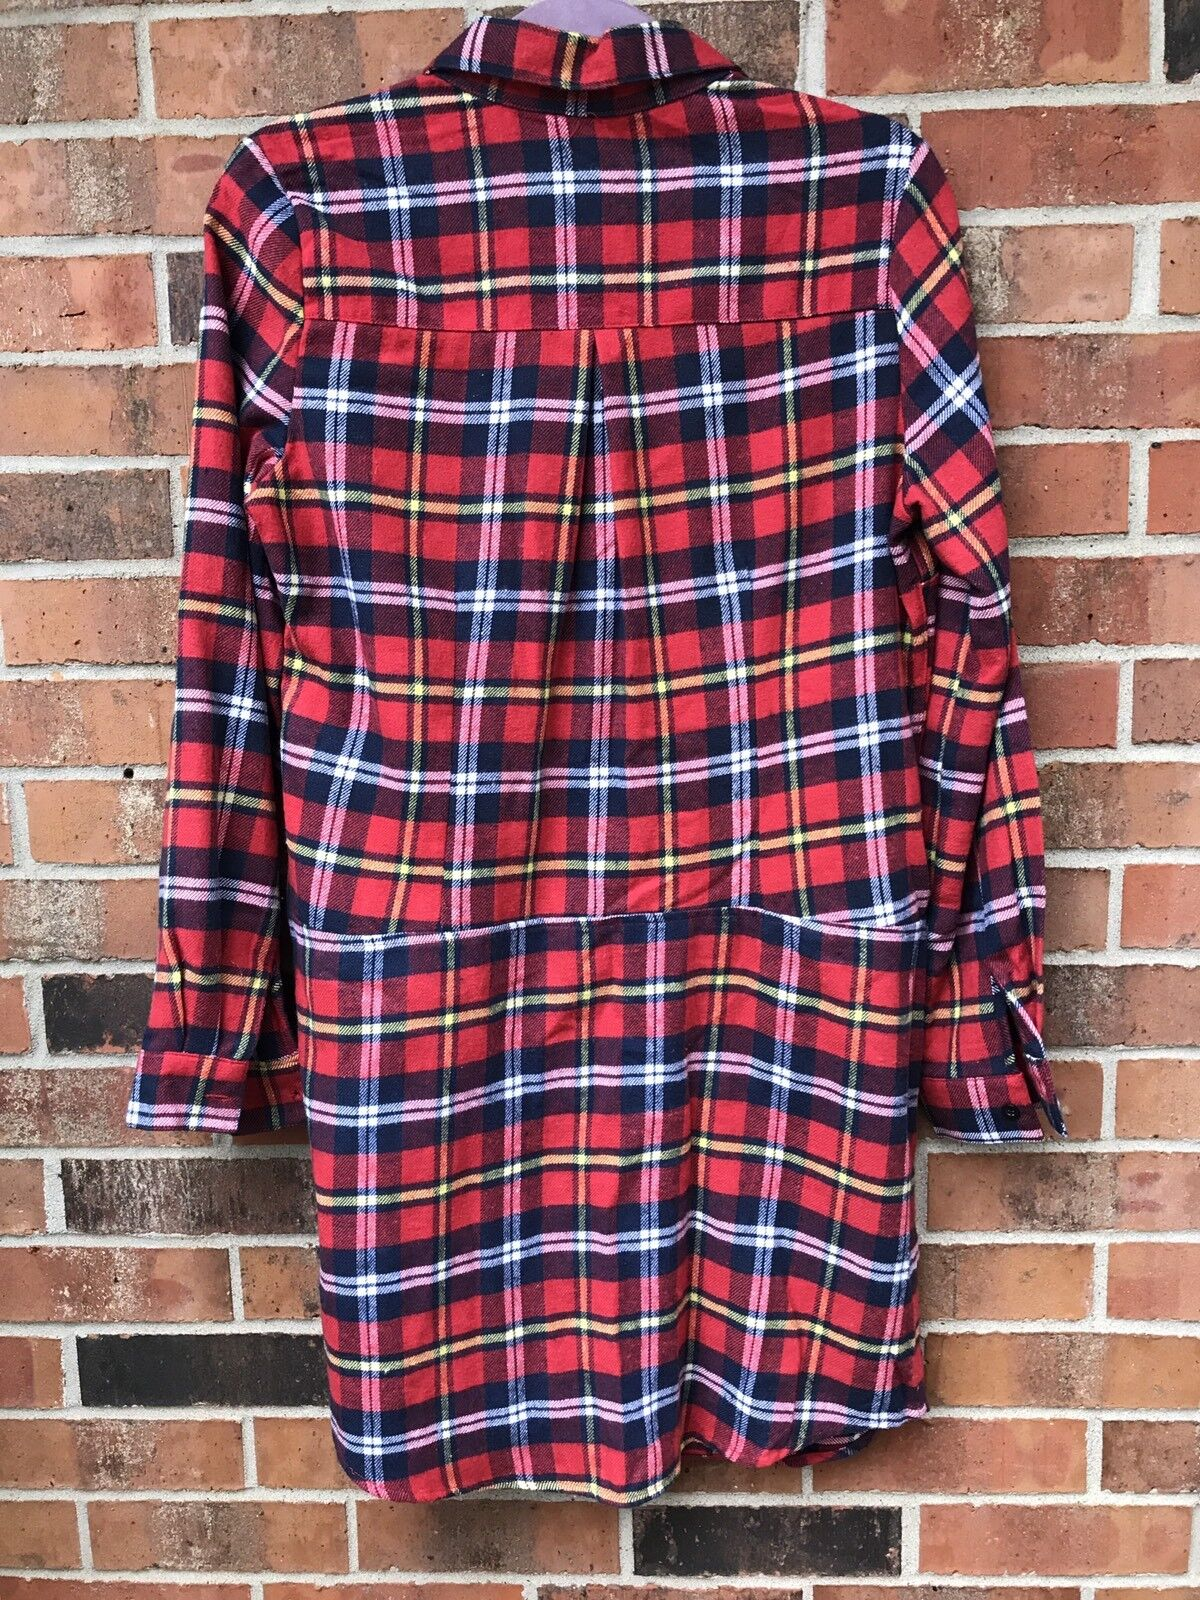 NEW Plaid Button Up Dress Small Red Tunic top top top dress flannel winter fall holiday c1044a